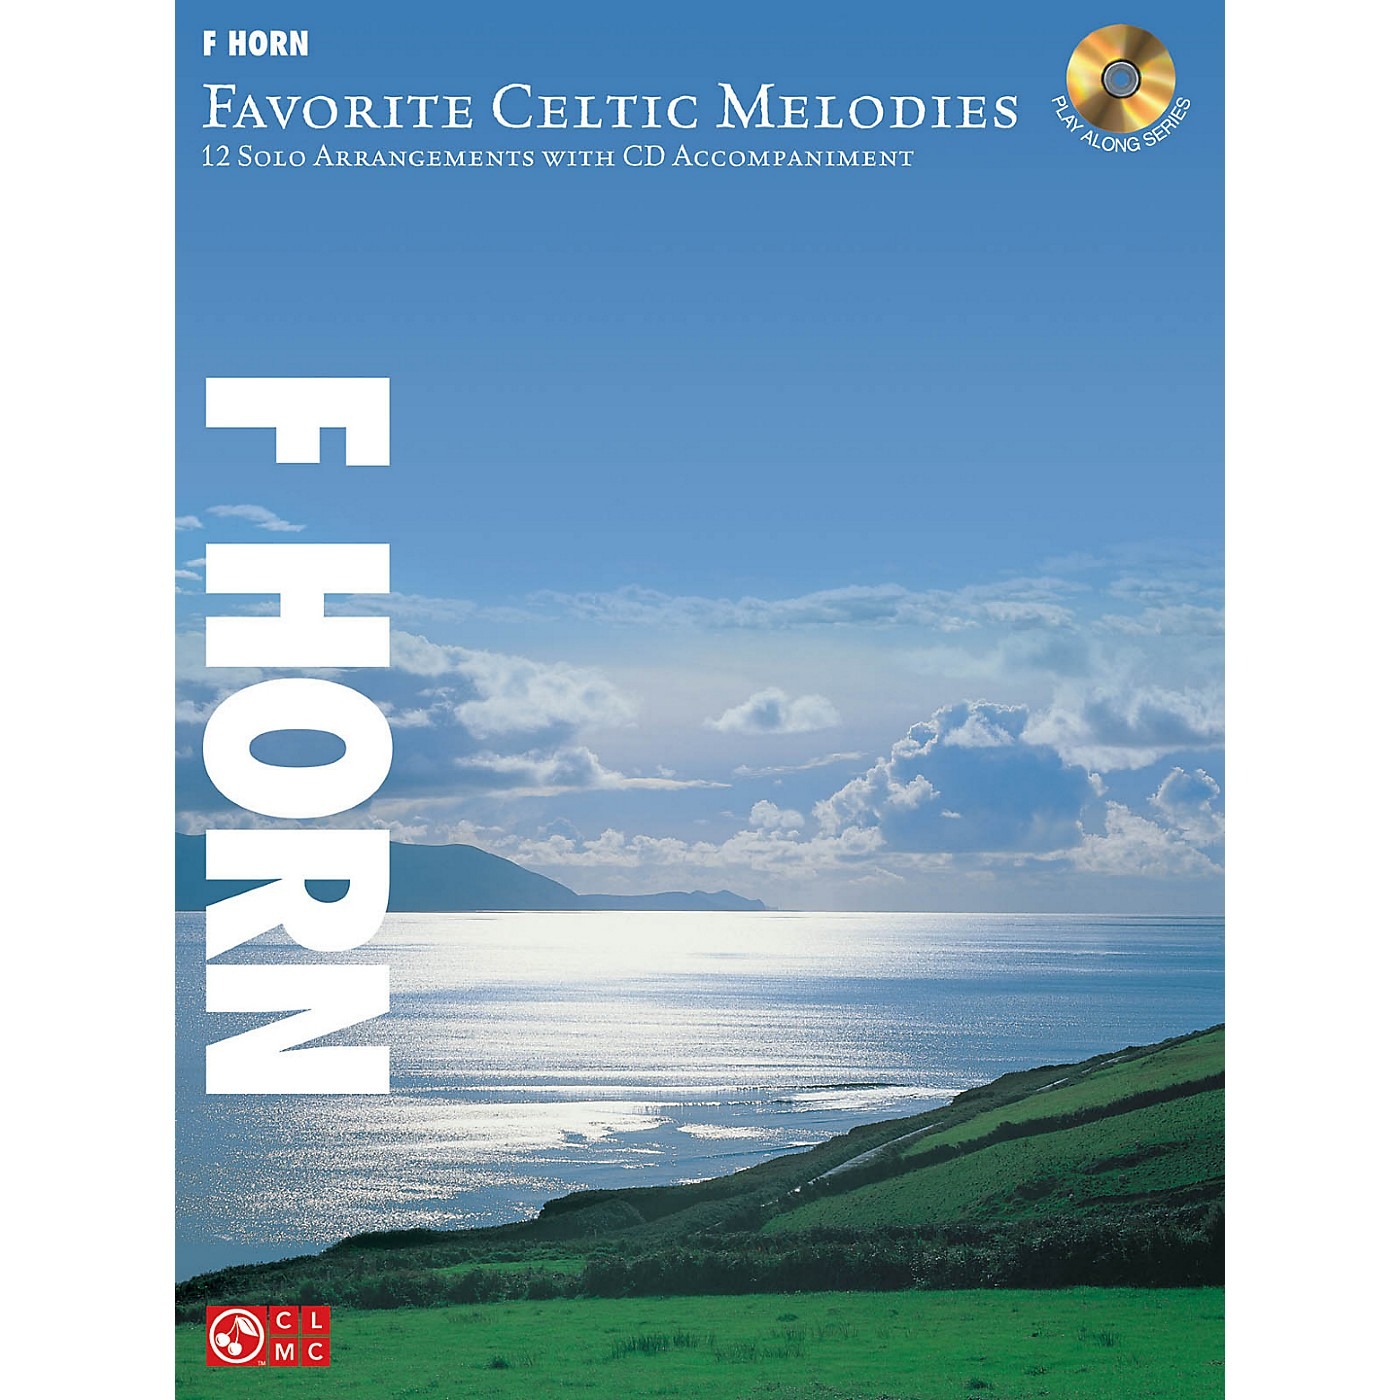 Hal Leonard Favorite Celtic Melodies For F Horn Book/CD thumbnail